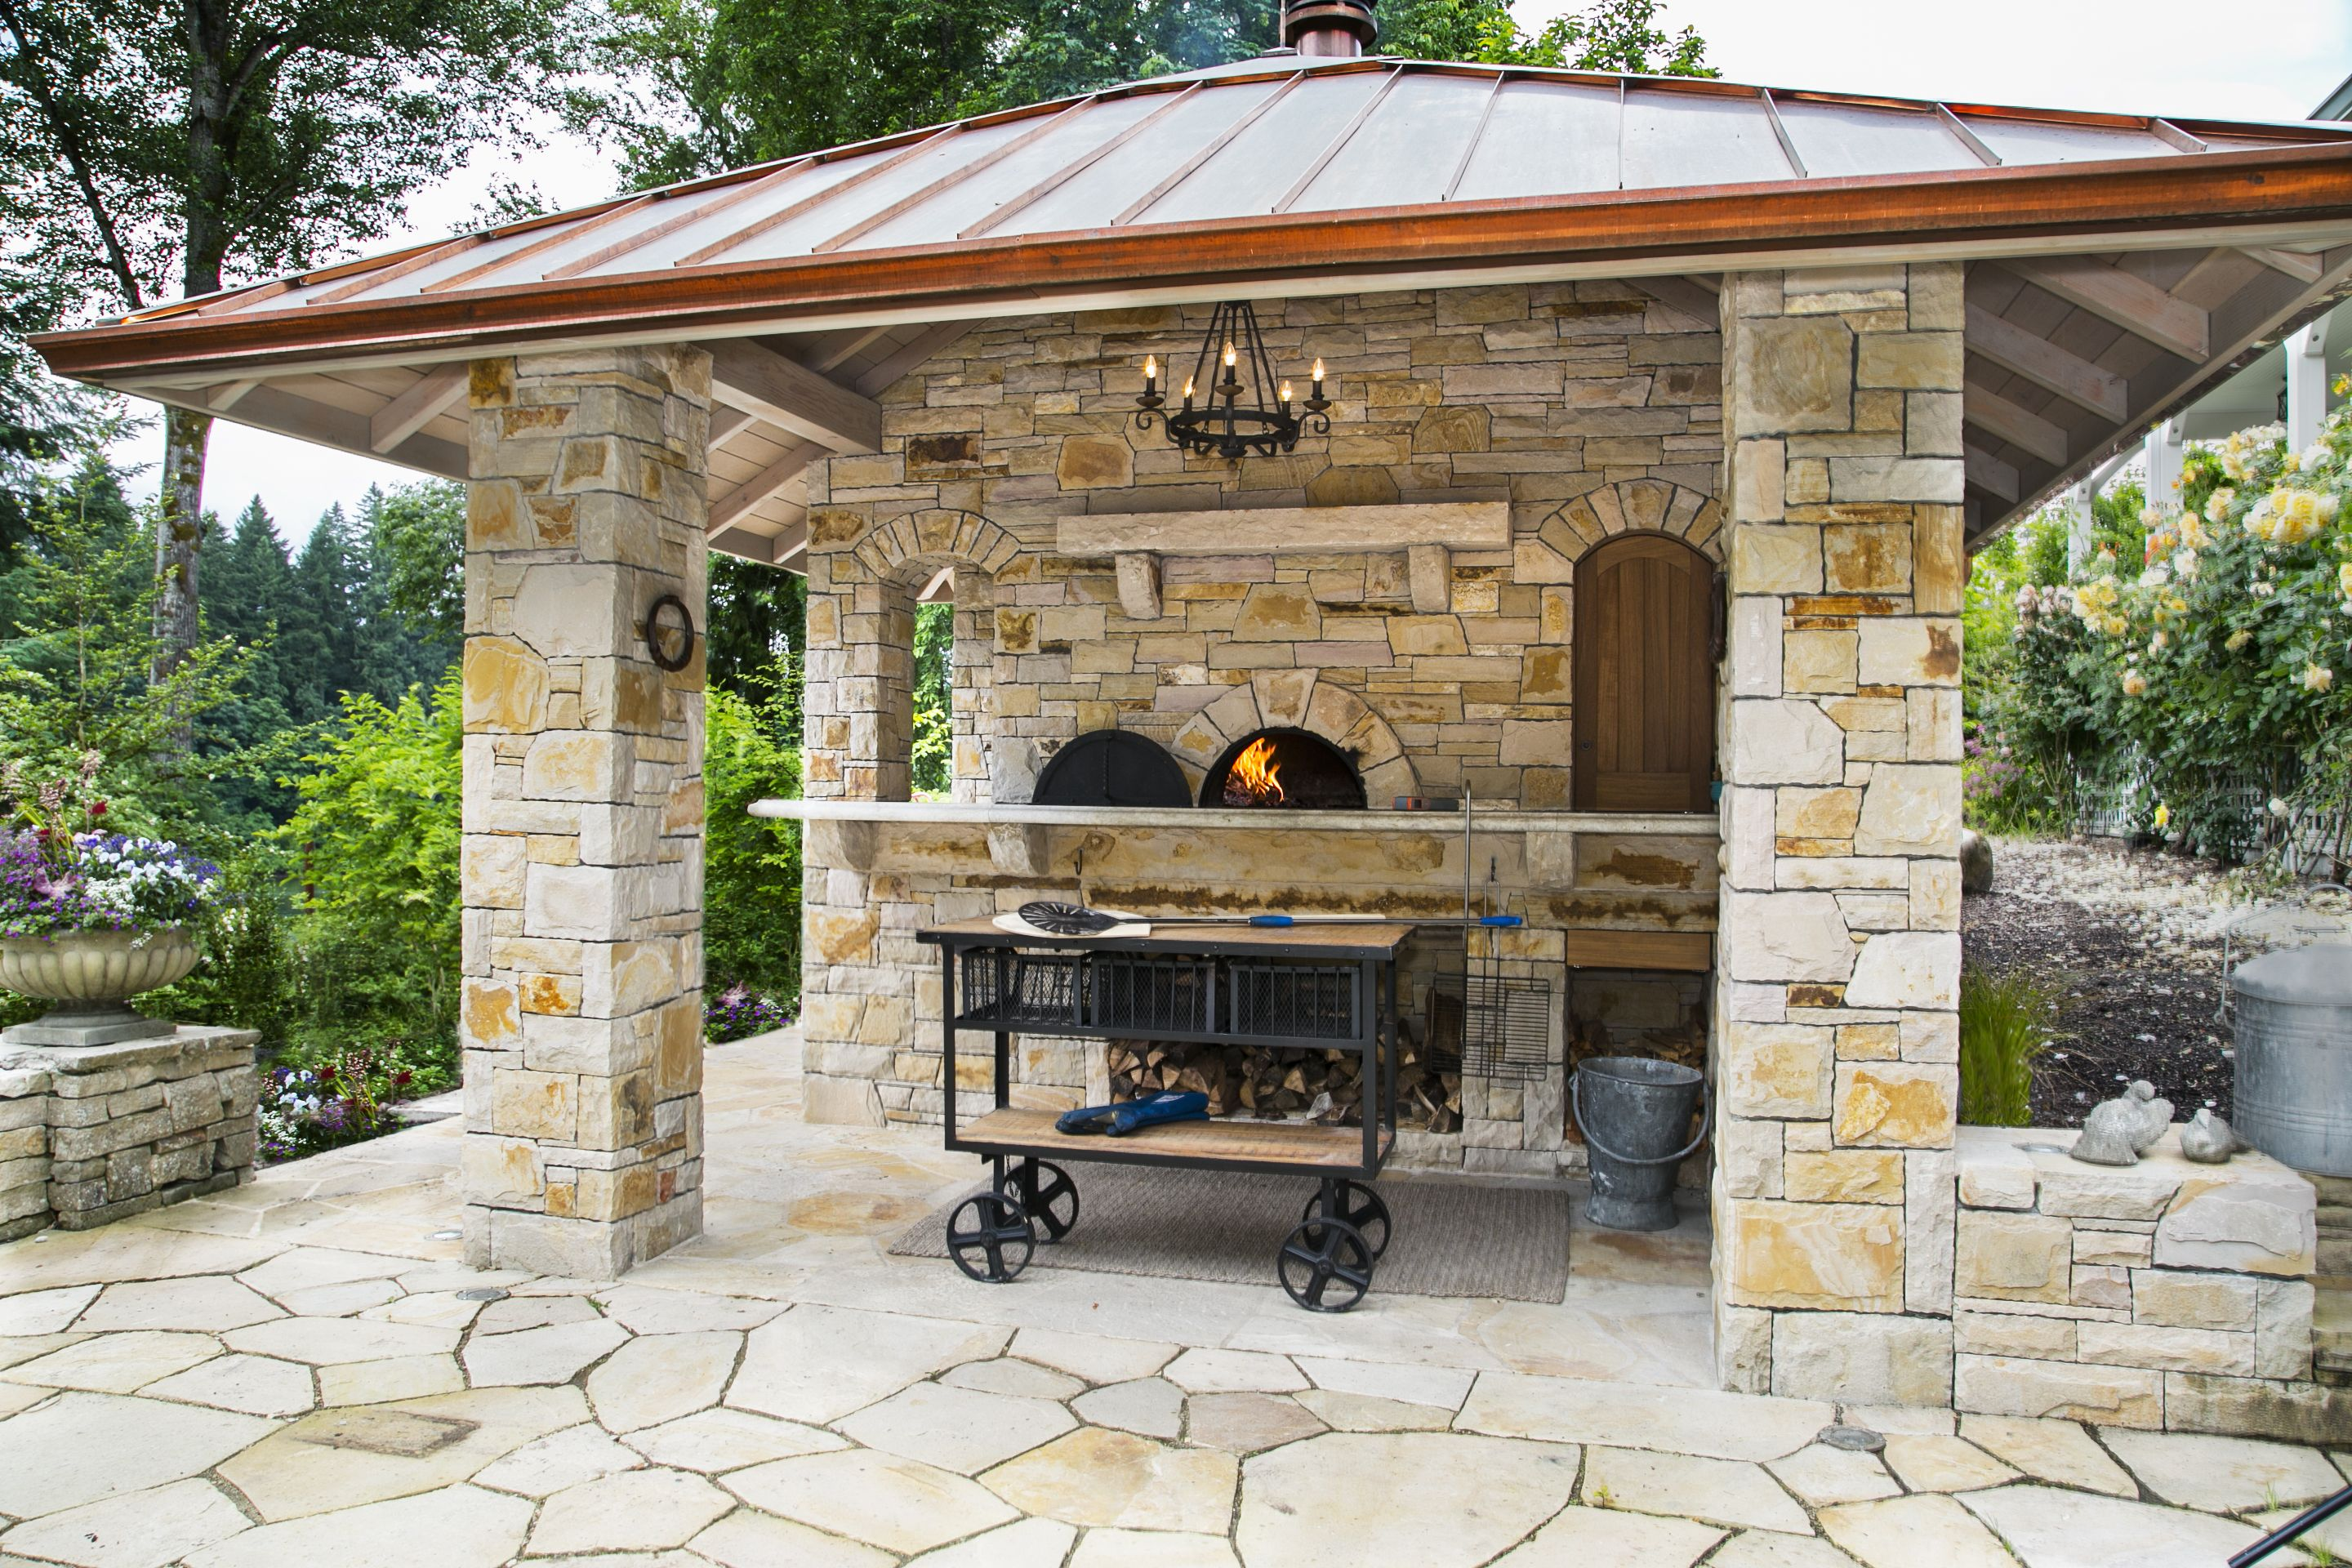 Residential oven exterior installation prima pizza oven in